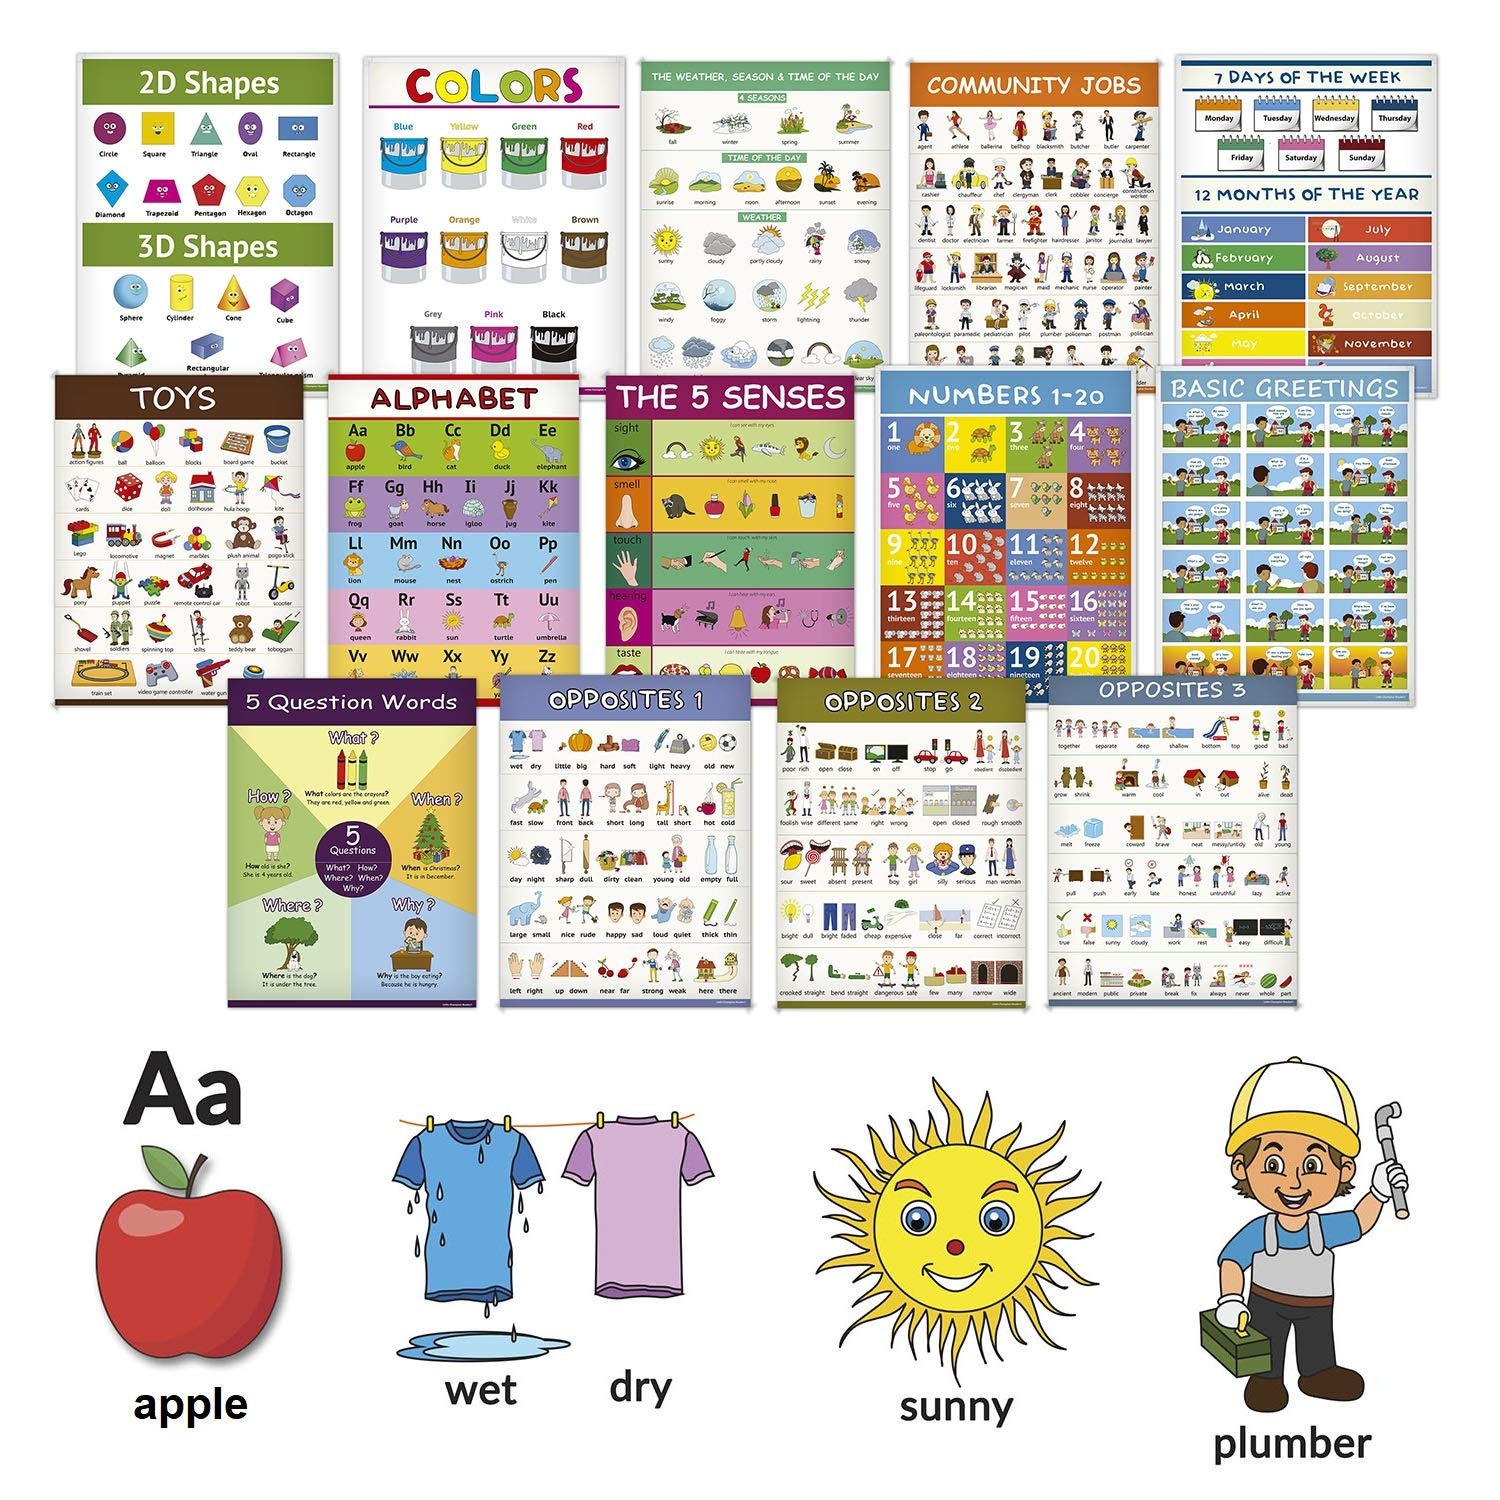 14 Educational Classroom Posters for Toddlers - ABC Alphabet, Numbers, Shapes, Colors, Days of The Week, Months of The Year, Weather, Opposites and More - Learning for Toddlers Classroom Decorations